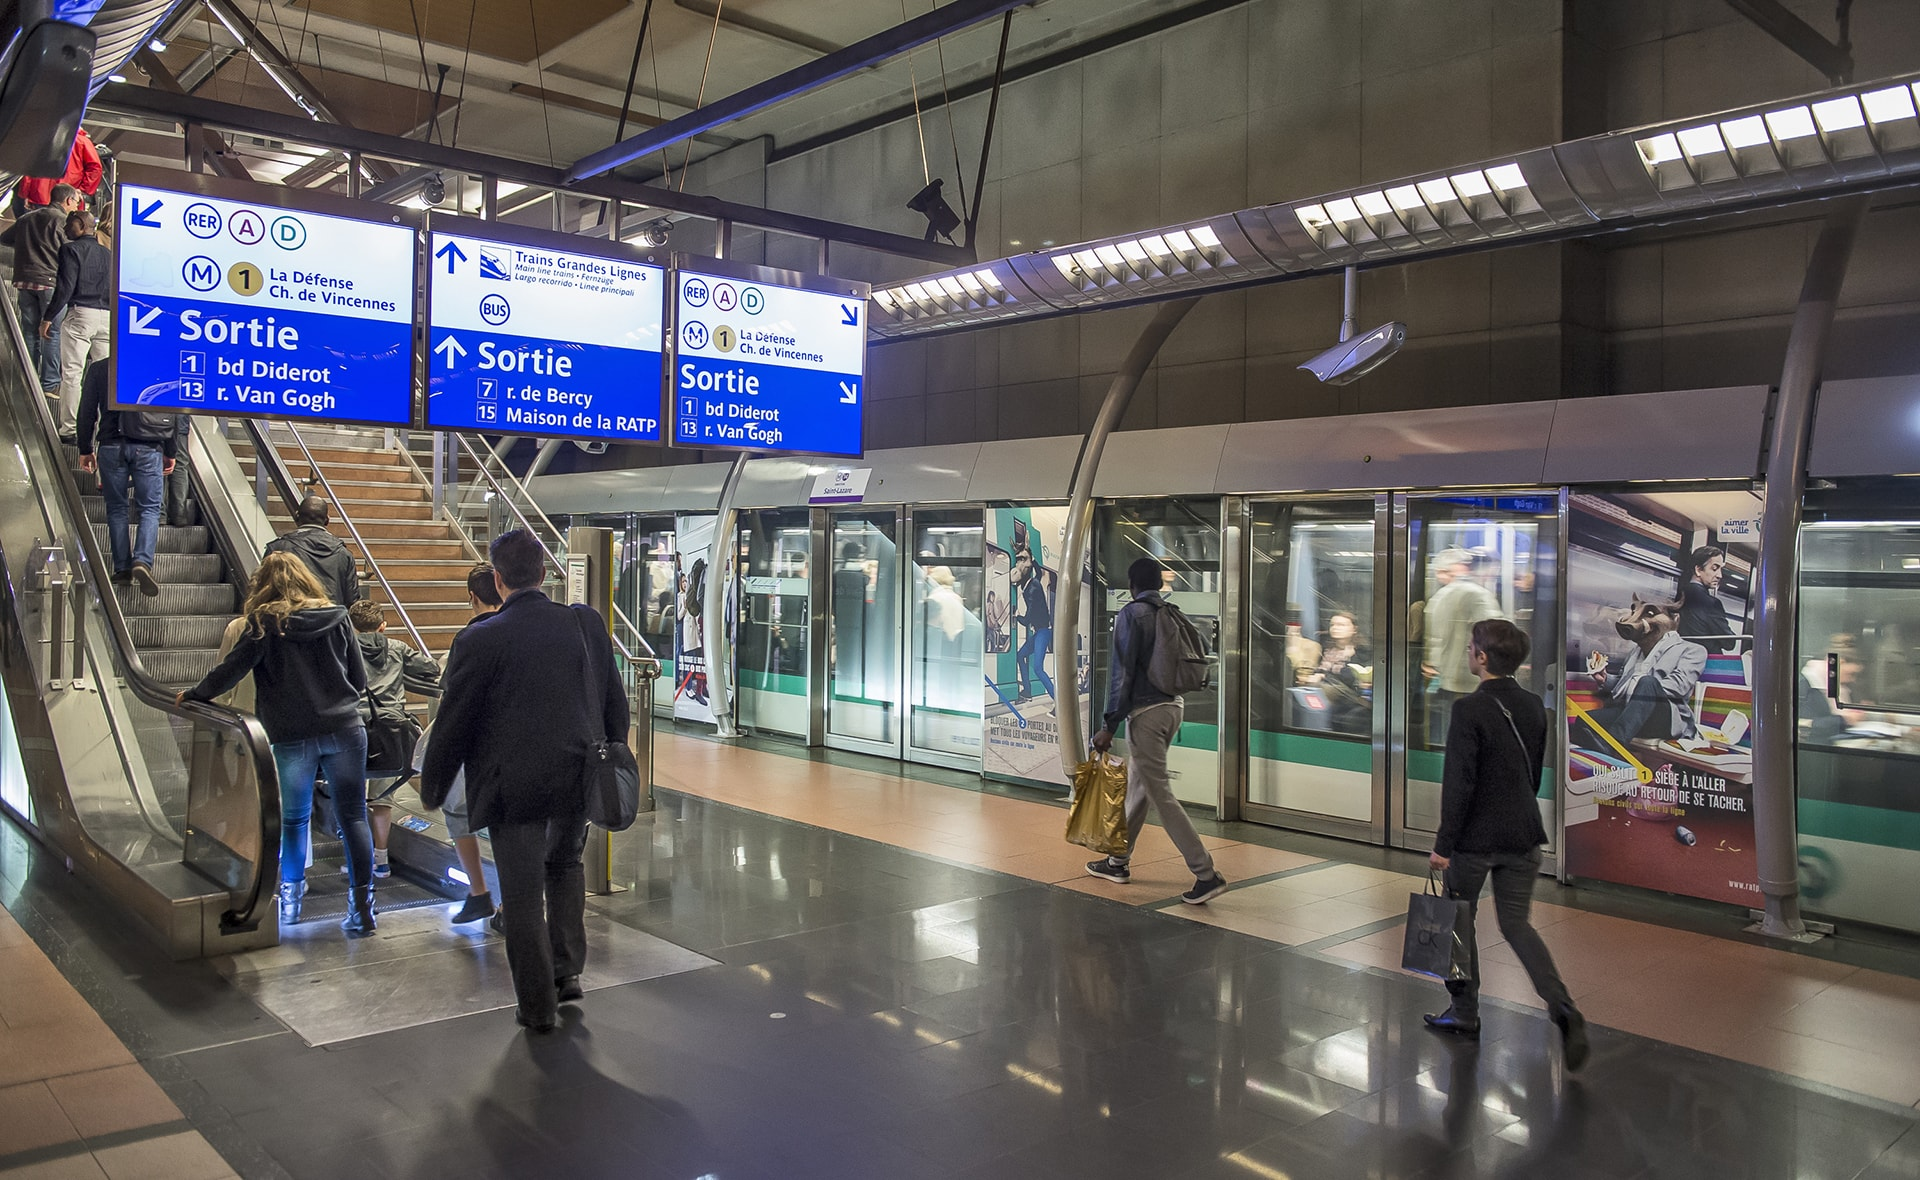 Image of train and people at RATP in Paris